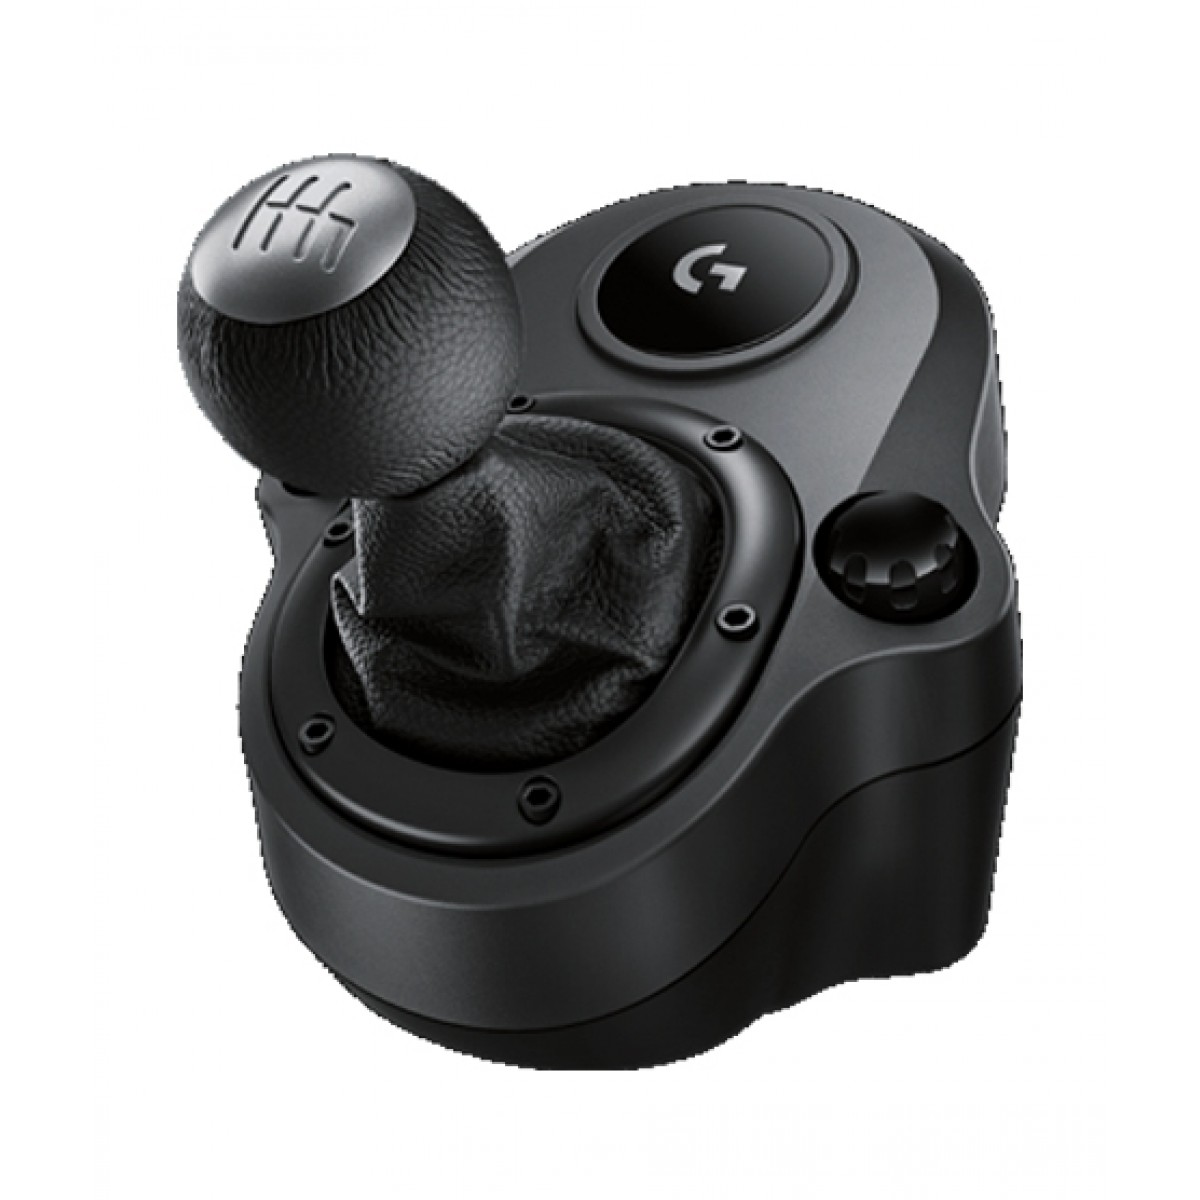 a7c565e5f46 Logitech Driving Force Shifter For Racing Wheel Price in Pakistan | Buy Logitech  Driving Force Shifter For G29/G920 Racing Wheel (941-000132) | iShopping.pk